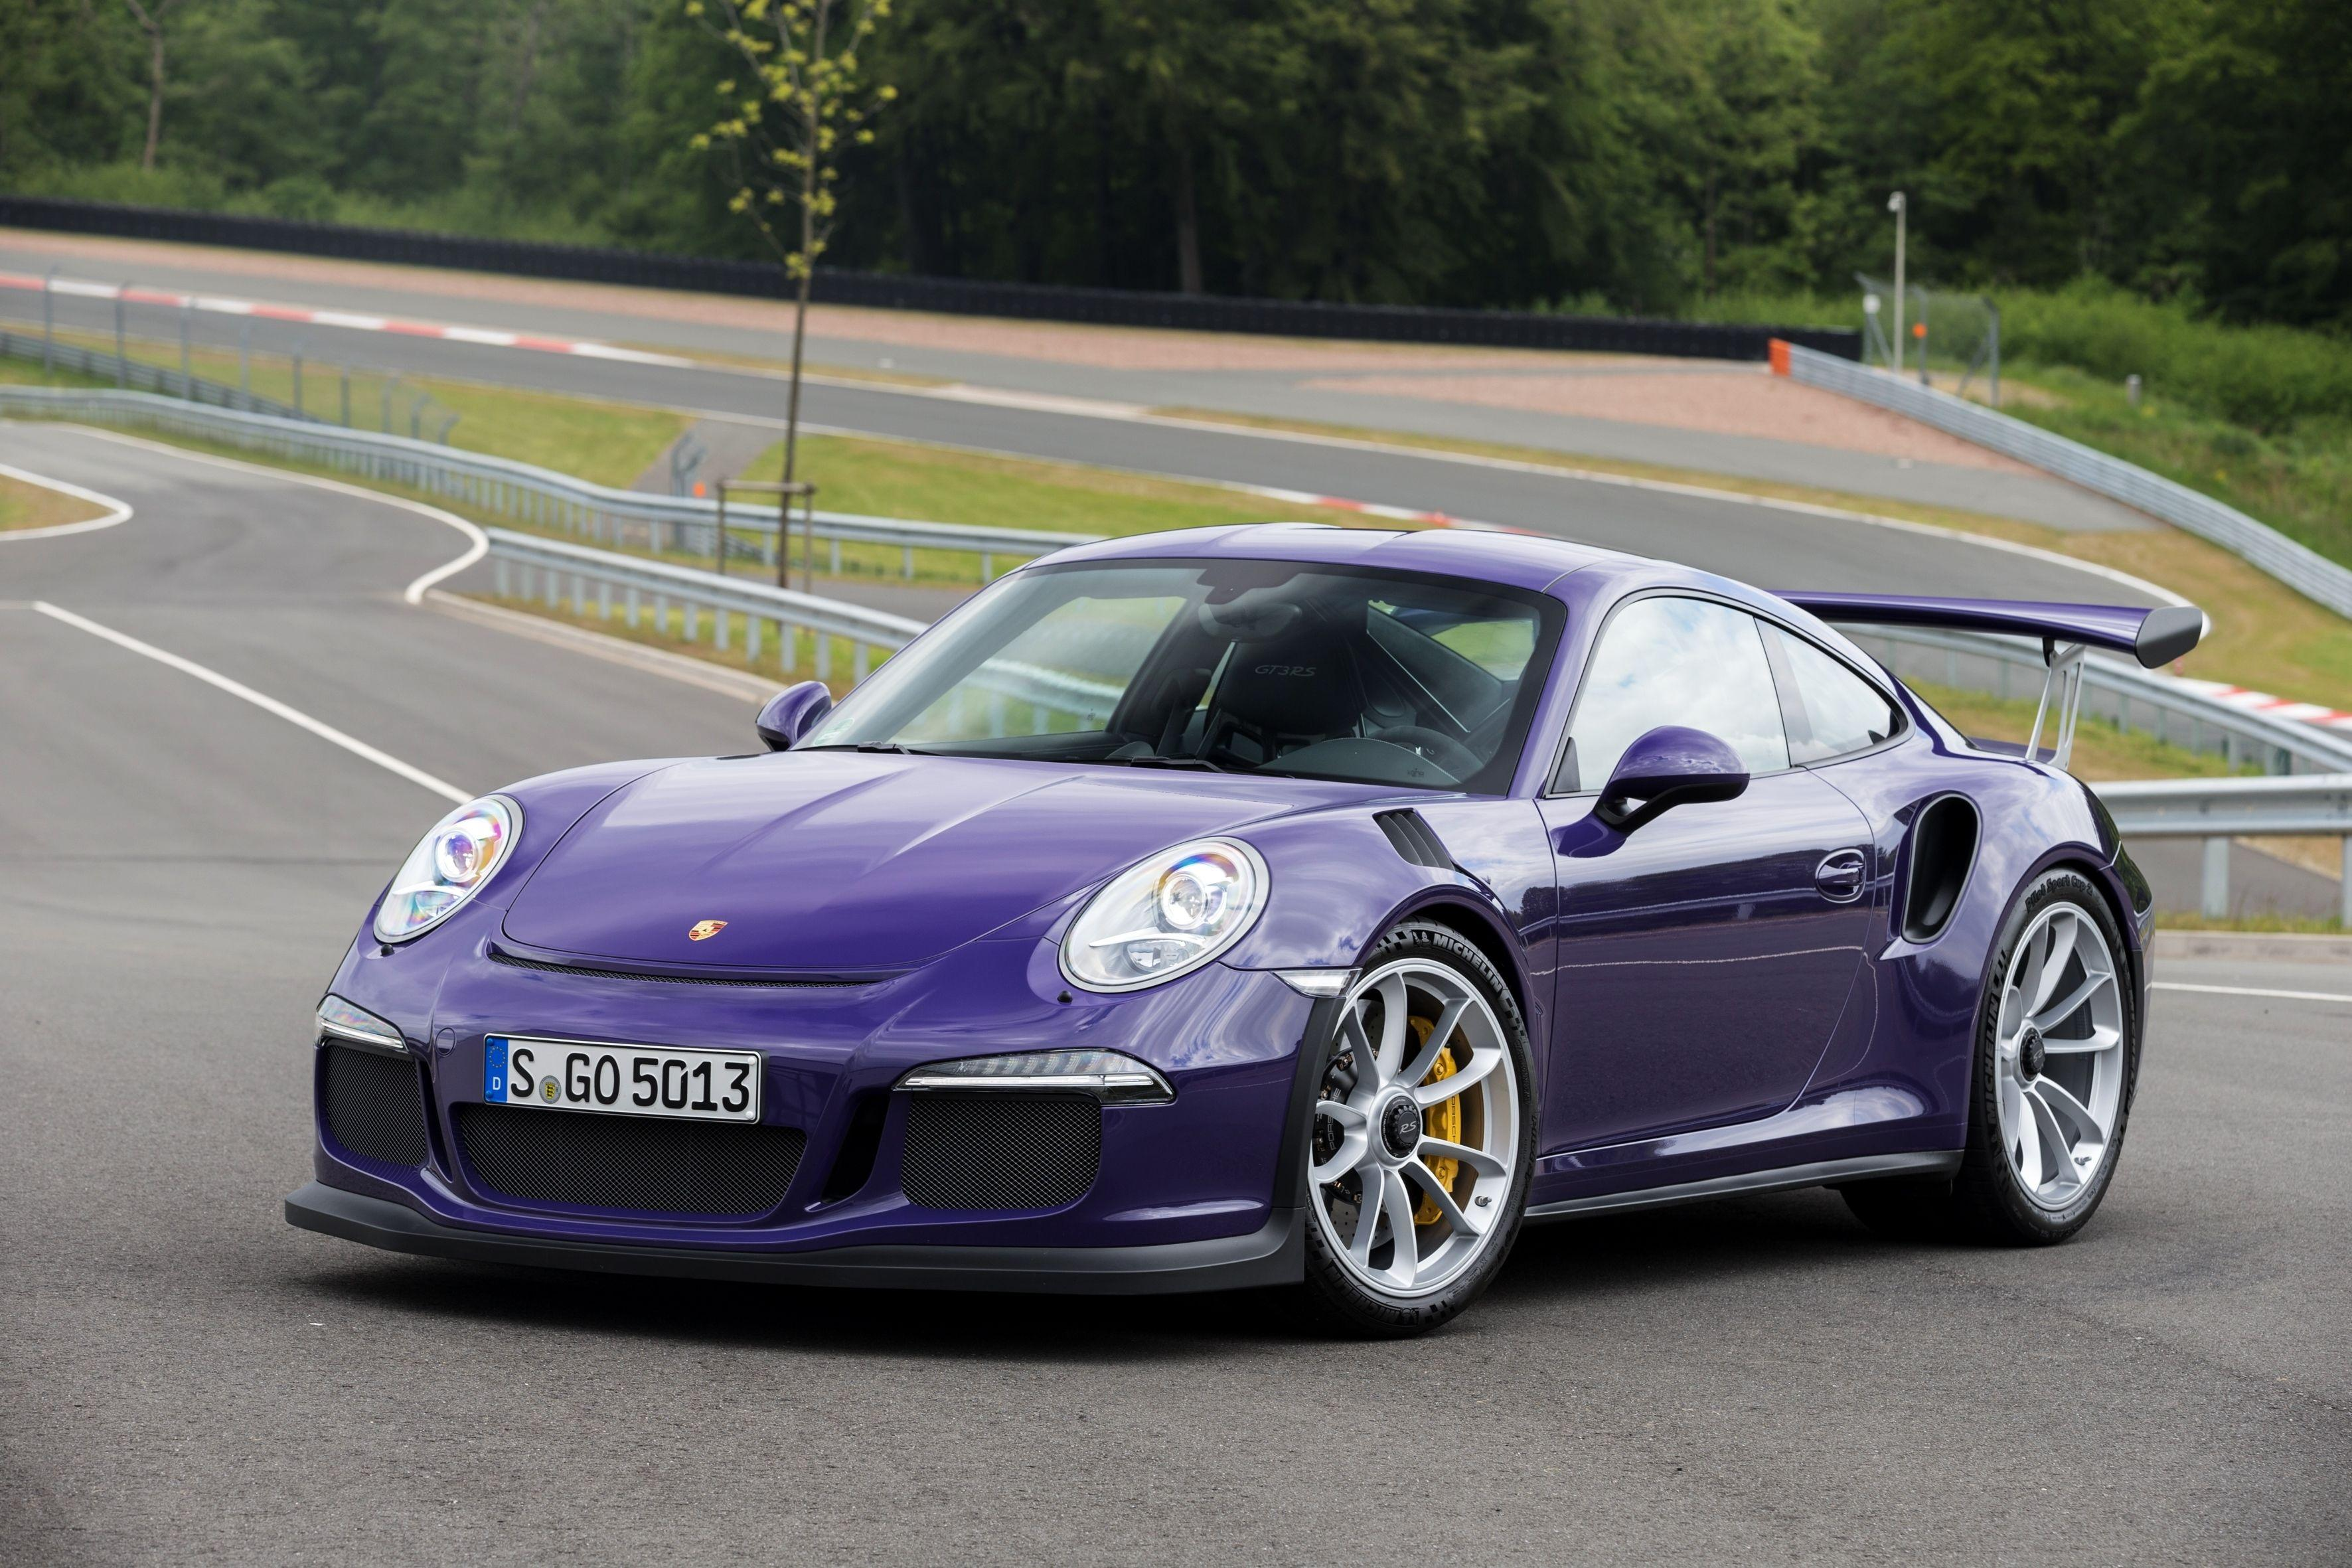 Porsche 911 GT3 Full HD Wallpaper and Background Image